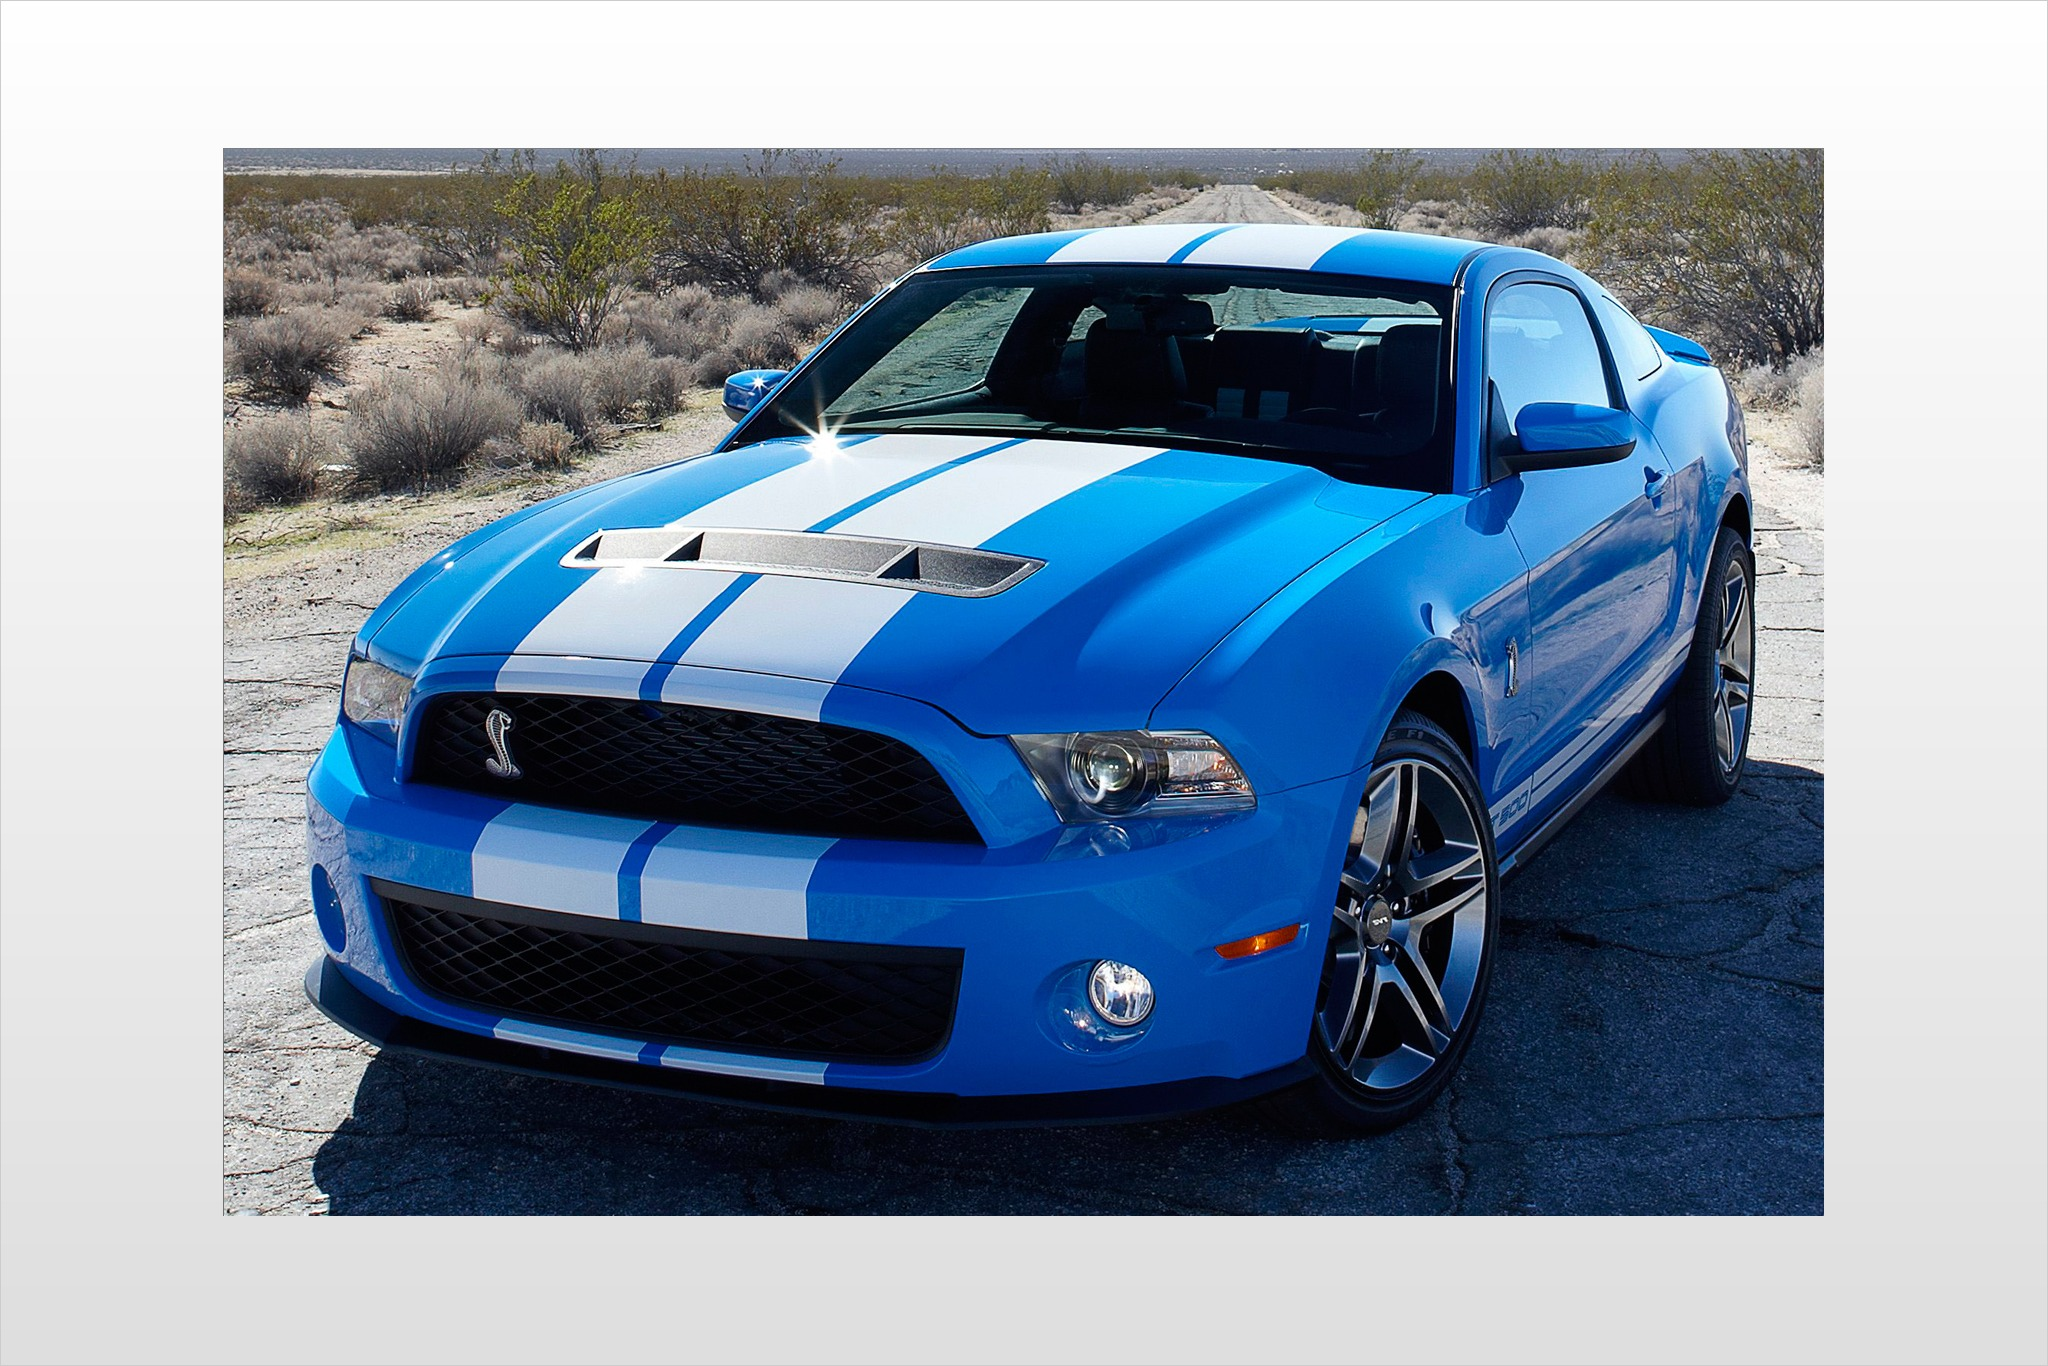 2010 Ford Shelby GT500 Ba exterior #2